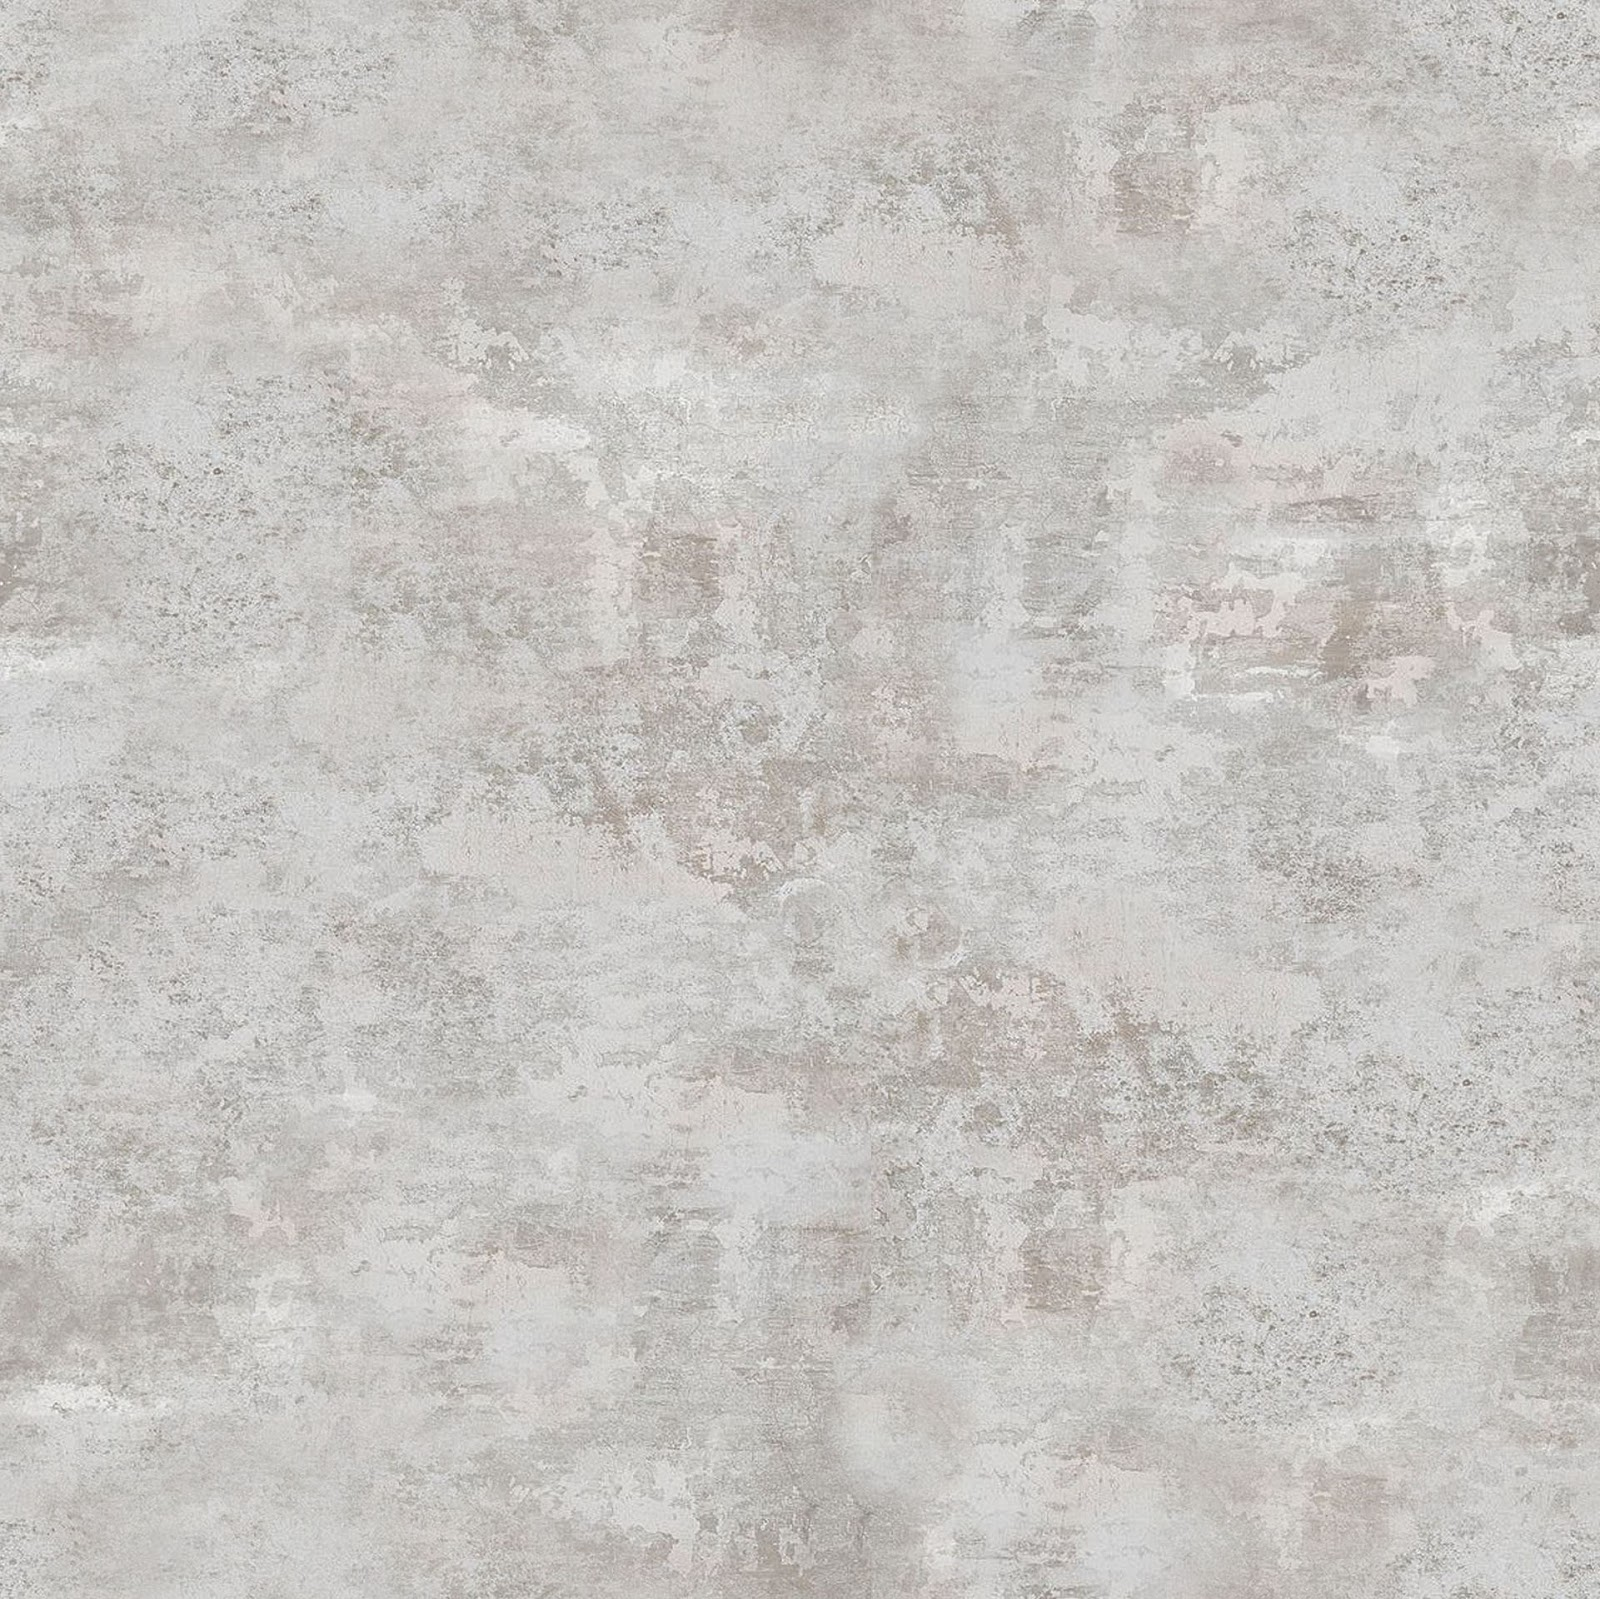 Seamless Dirty Concrete Wall Texture